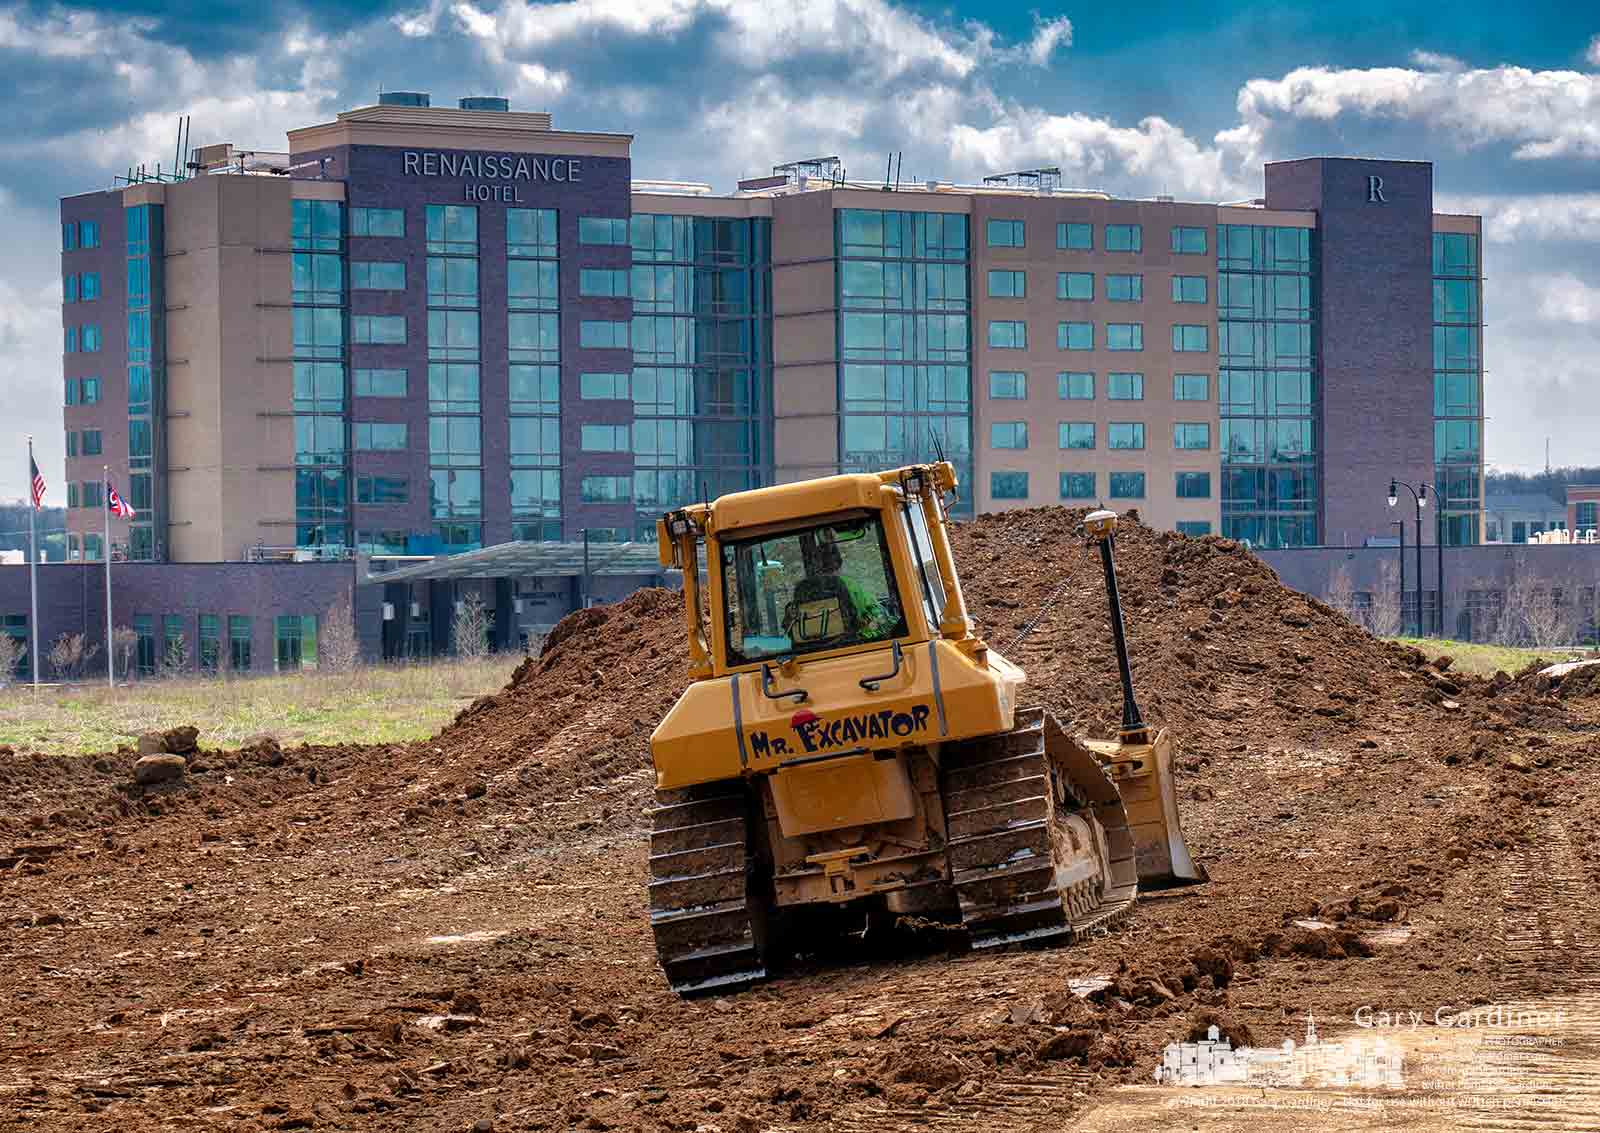 An excavating crew clears ground across the street from the Renaissance Hotel to make way for the construction of an office building. My Final Photo for April 26, 2018.